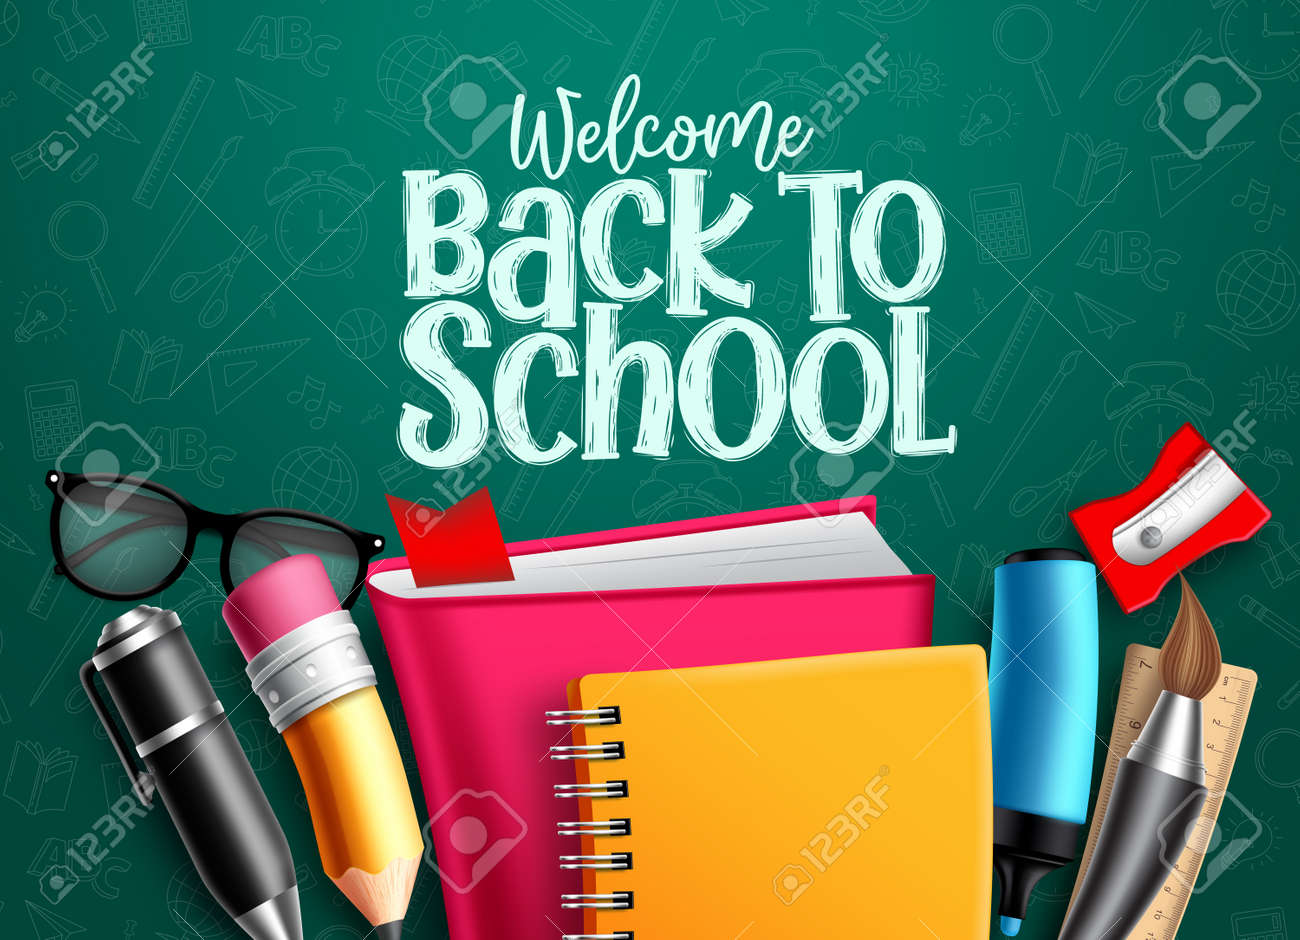 Back to school vector banner. Back to school welcome text with education items, supplies and objects in green pattern background foe educational design. Vector illustration. - 148508155